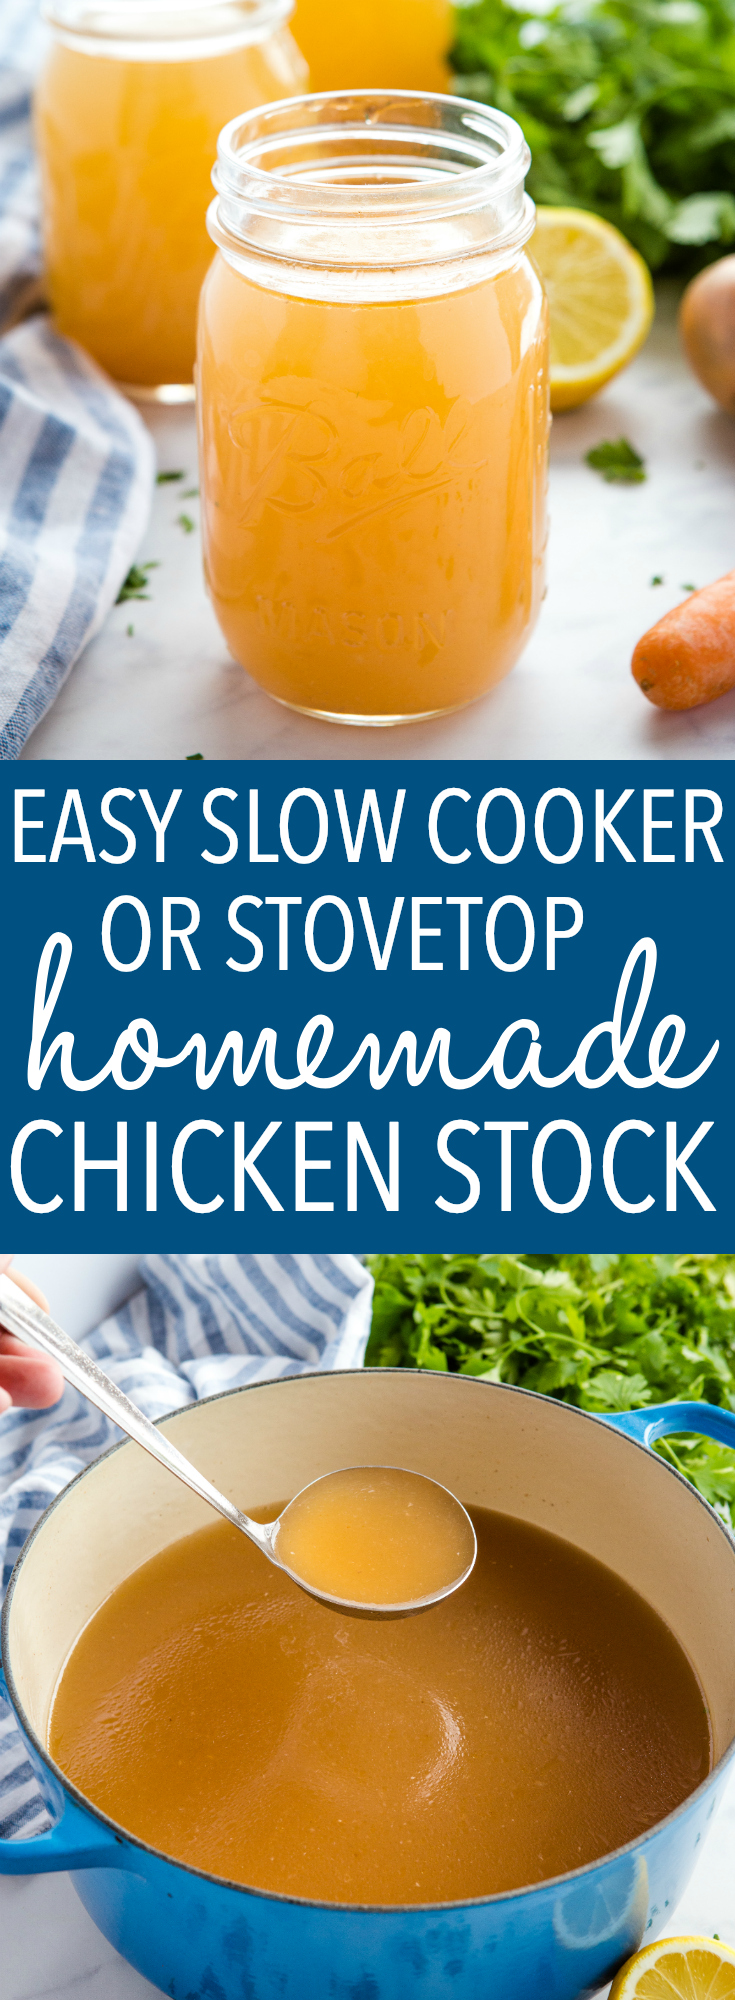 This Easy Homemade Chicken Stock is the perfect recipe for making Chicken broth or stock at home! Make it on the stovetop or in the slow cooker to save time and money! Recipe from thebusybaker.ca! #chickenstock #chickenbroth #chicken #soup #easy #recipe #homemade #savemoney #savetime #slowcooker #crockpot #healthy #lowfat #weightwatchers #keto #paleo  via @busybakerblog